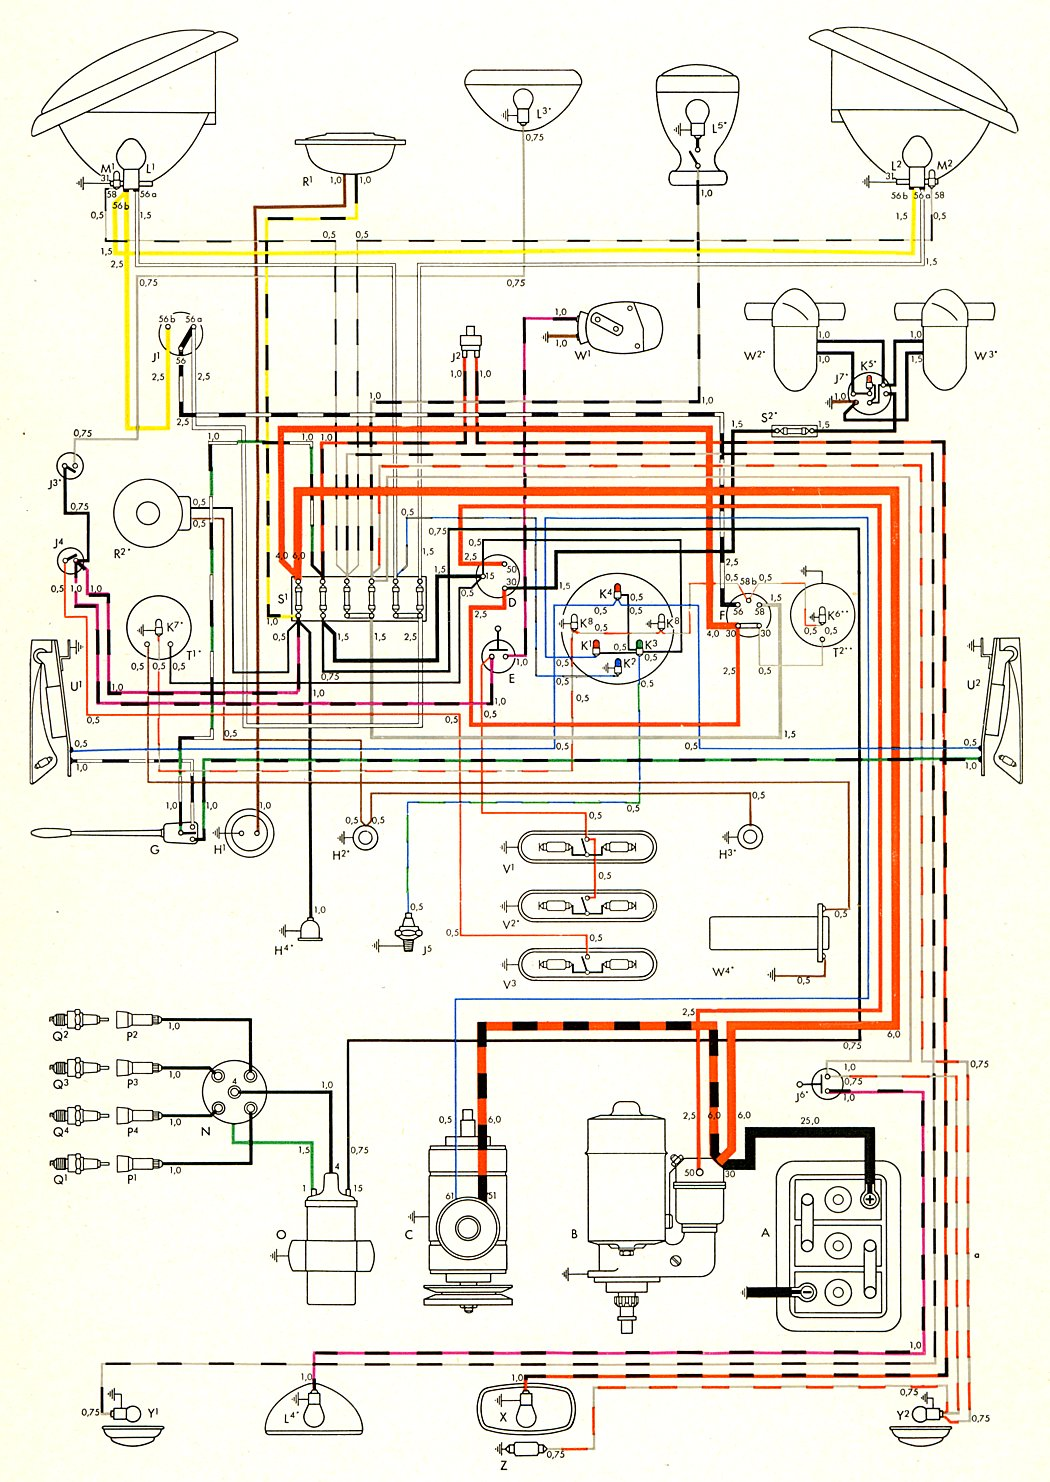 bus_nov57 1957 bus wiring diagram thegoldenbug com 1971 vw bus wiring diagram at n-0.co